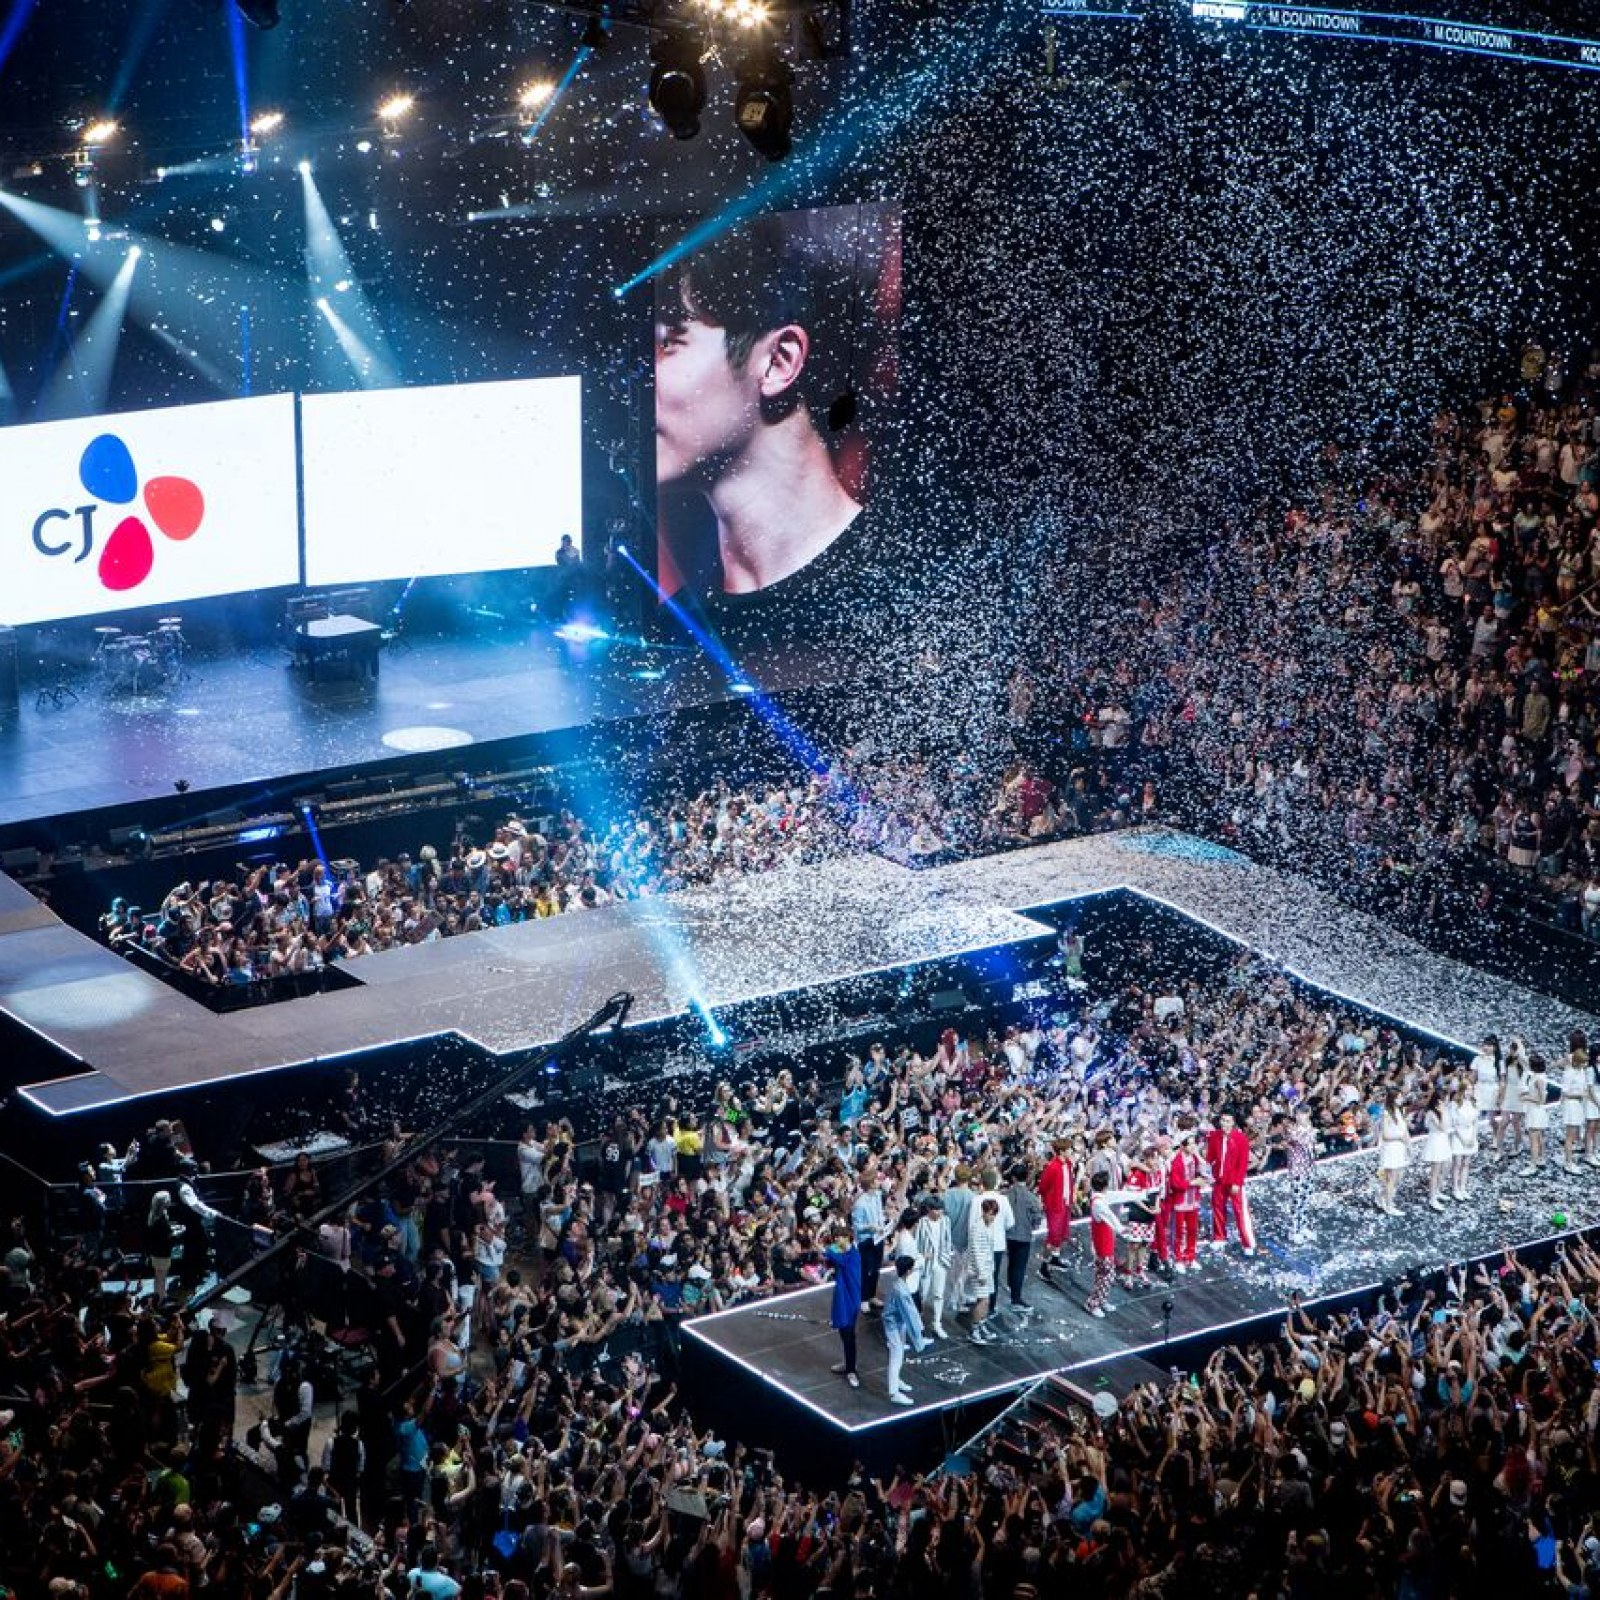 KCON NY 2019: Lineup, How to Watch, Live Stream Performances